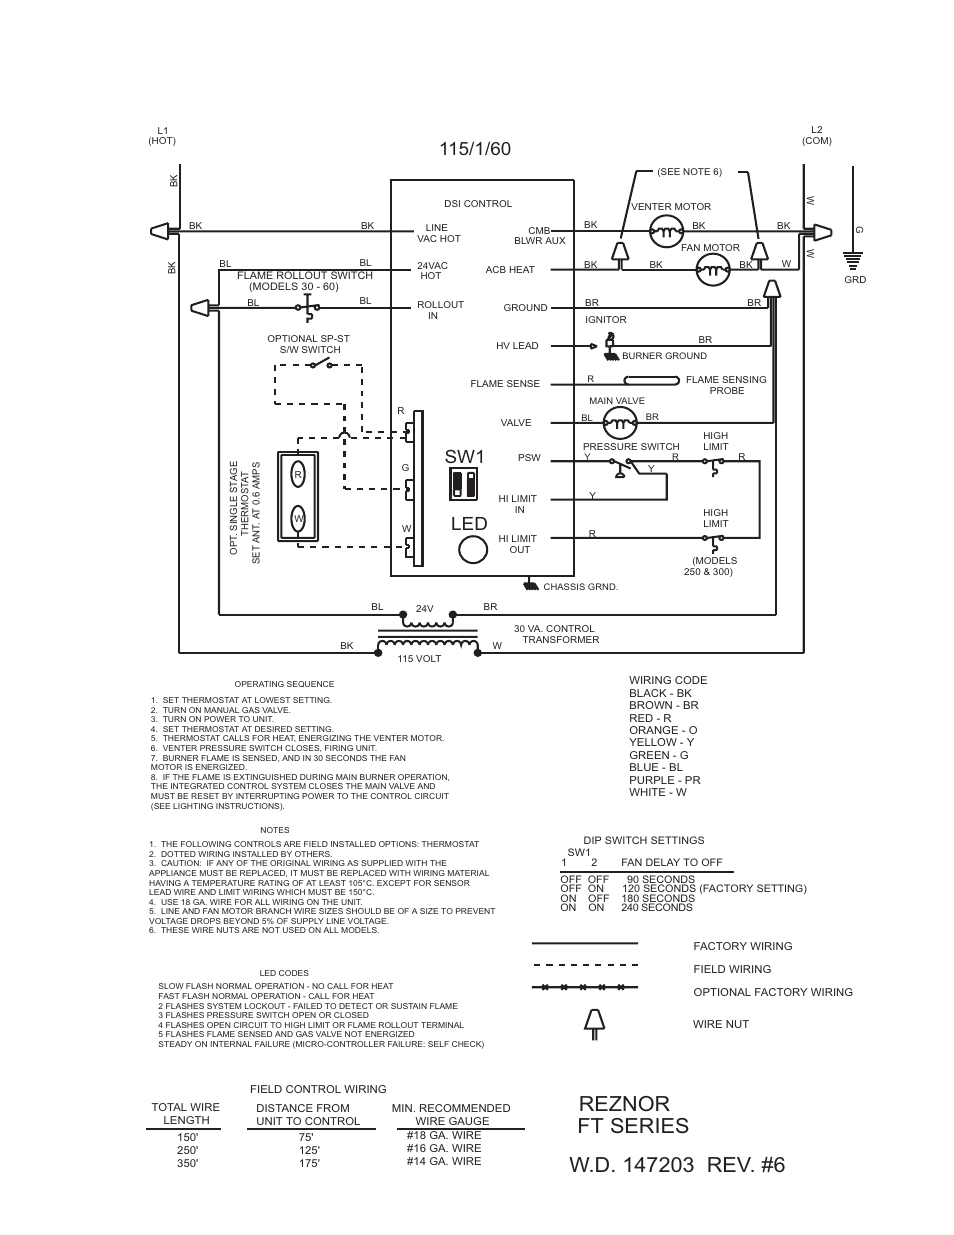 Reznor Heater Wiring Diagram - Wiring Diagrams on gas valve wiring diagram, furnace fan relay wiring diagram, reznor gas heaters dealers, basic furnace wiring diagram, gas wall heater wiring diagram, modine gas heater wiring diagram, reznor gas heaters troubleshooting, furnace blower wiring diagram, reznor gas heaters conversion kits, thermostat wiring diagram, gas water heater wiring diagram, reznor lp conversion kit, steam boiler wiring diagram, gas pool heater installation diagram, gas fireplace gas flow diagram, reznor garage heaters gas, reznor gas heaters model f130e, atwood hydro flame furnace wiring diagram, reznor gas infrared heaters, reznor heater wiring diagram 1984,